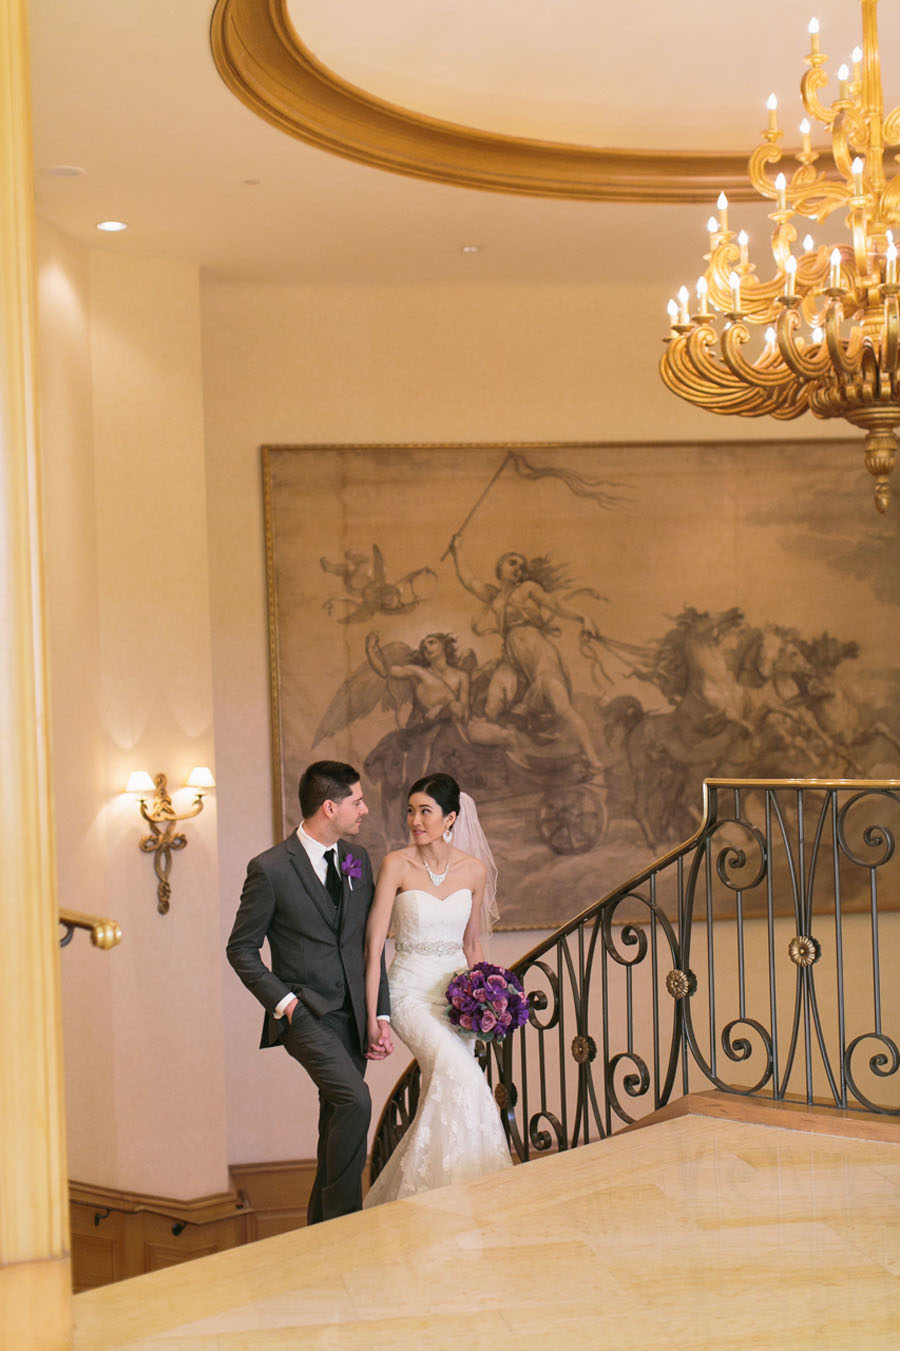 Katherine and Jared took a walk on The Four Seasons staircase.      Las Vegas Wedding Planner  Andrea Eppolito .  Wedding at  Four Seasons .  Photography by  Meg Ruth .  Floral and Decor by  Naakiti Floral .